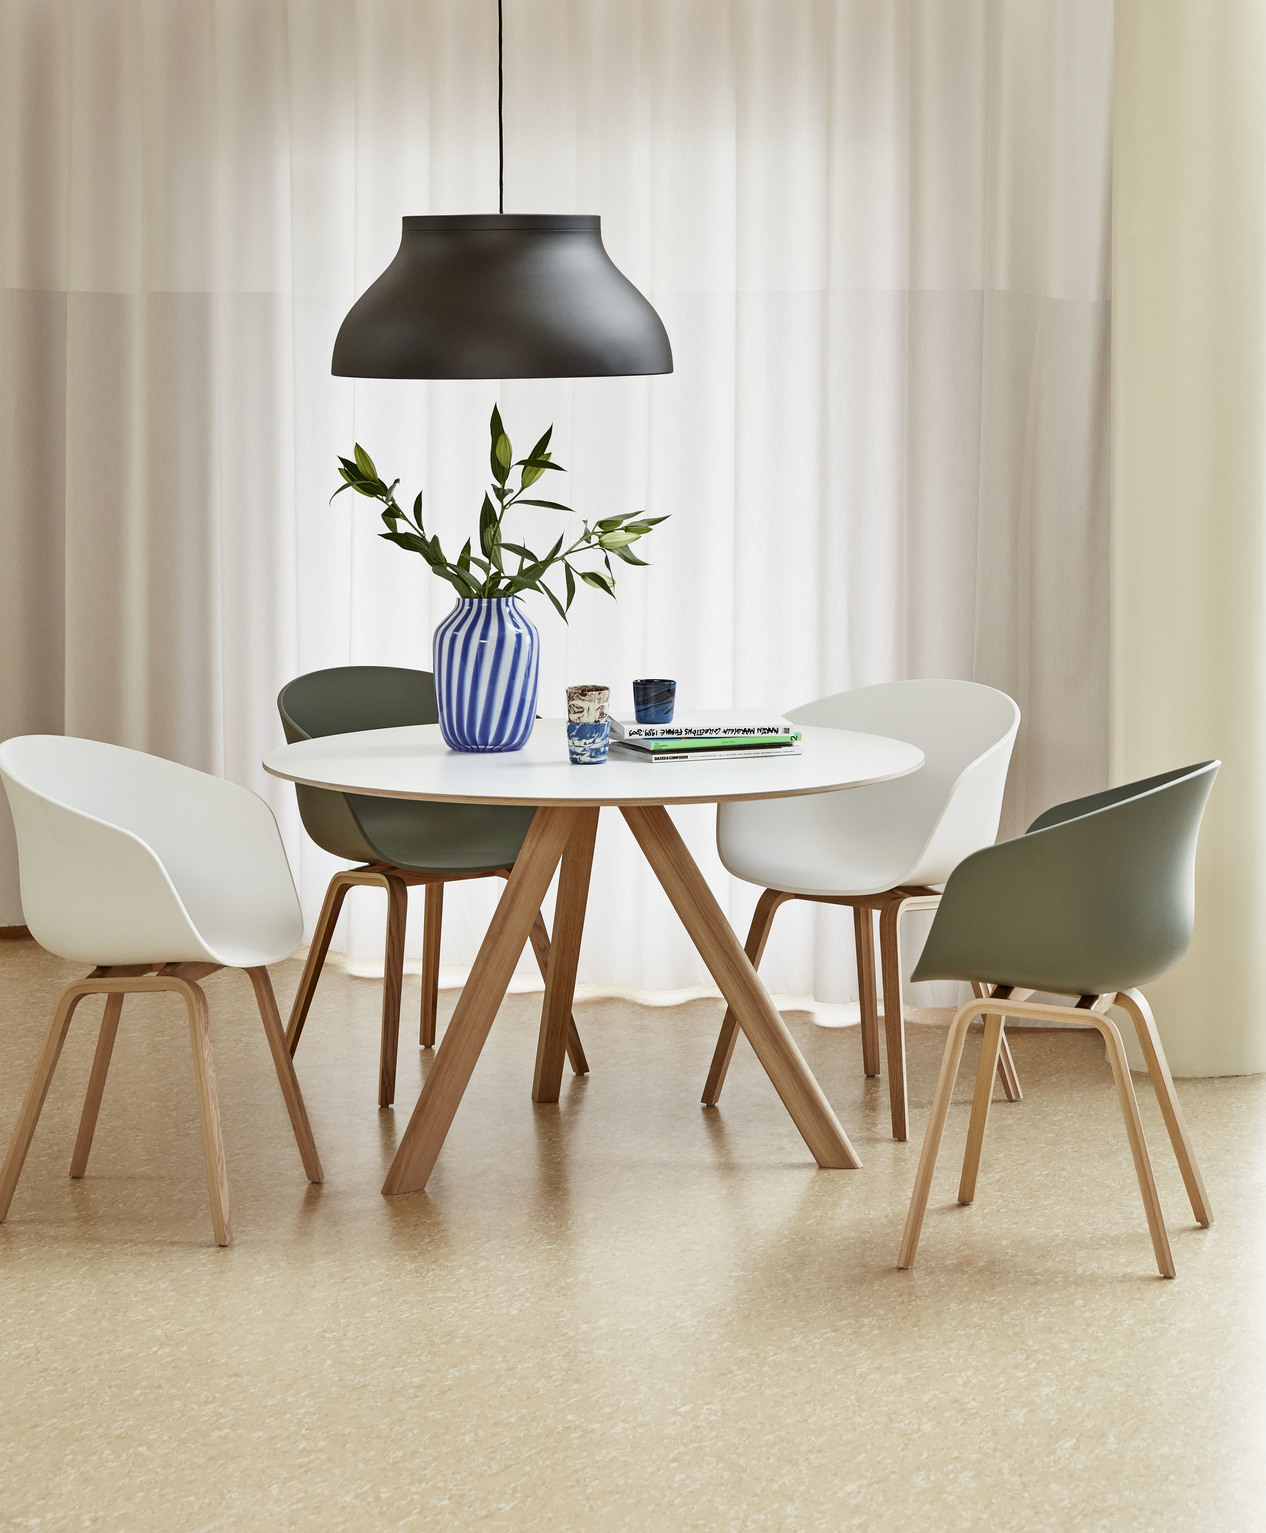 Hay CPH20 Table Round 90 White Laminate/Soaped